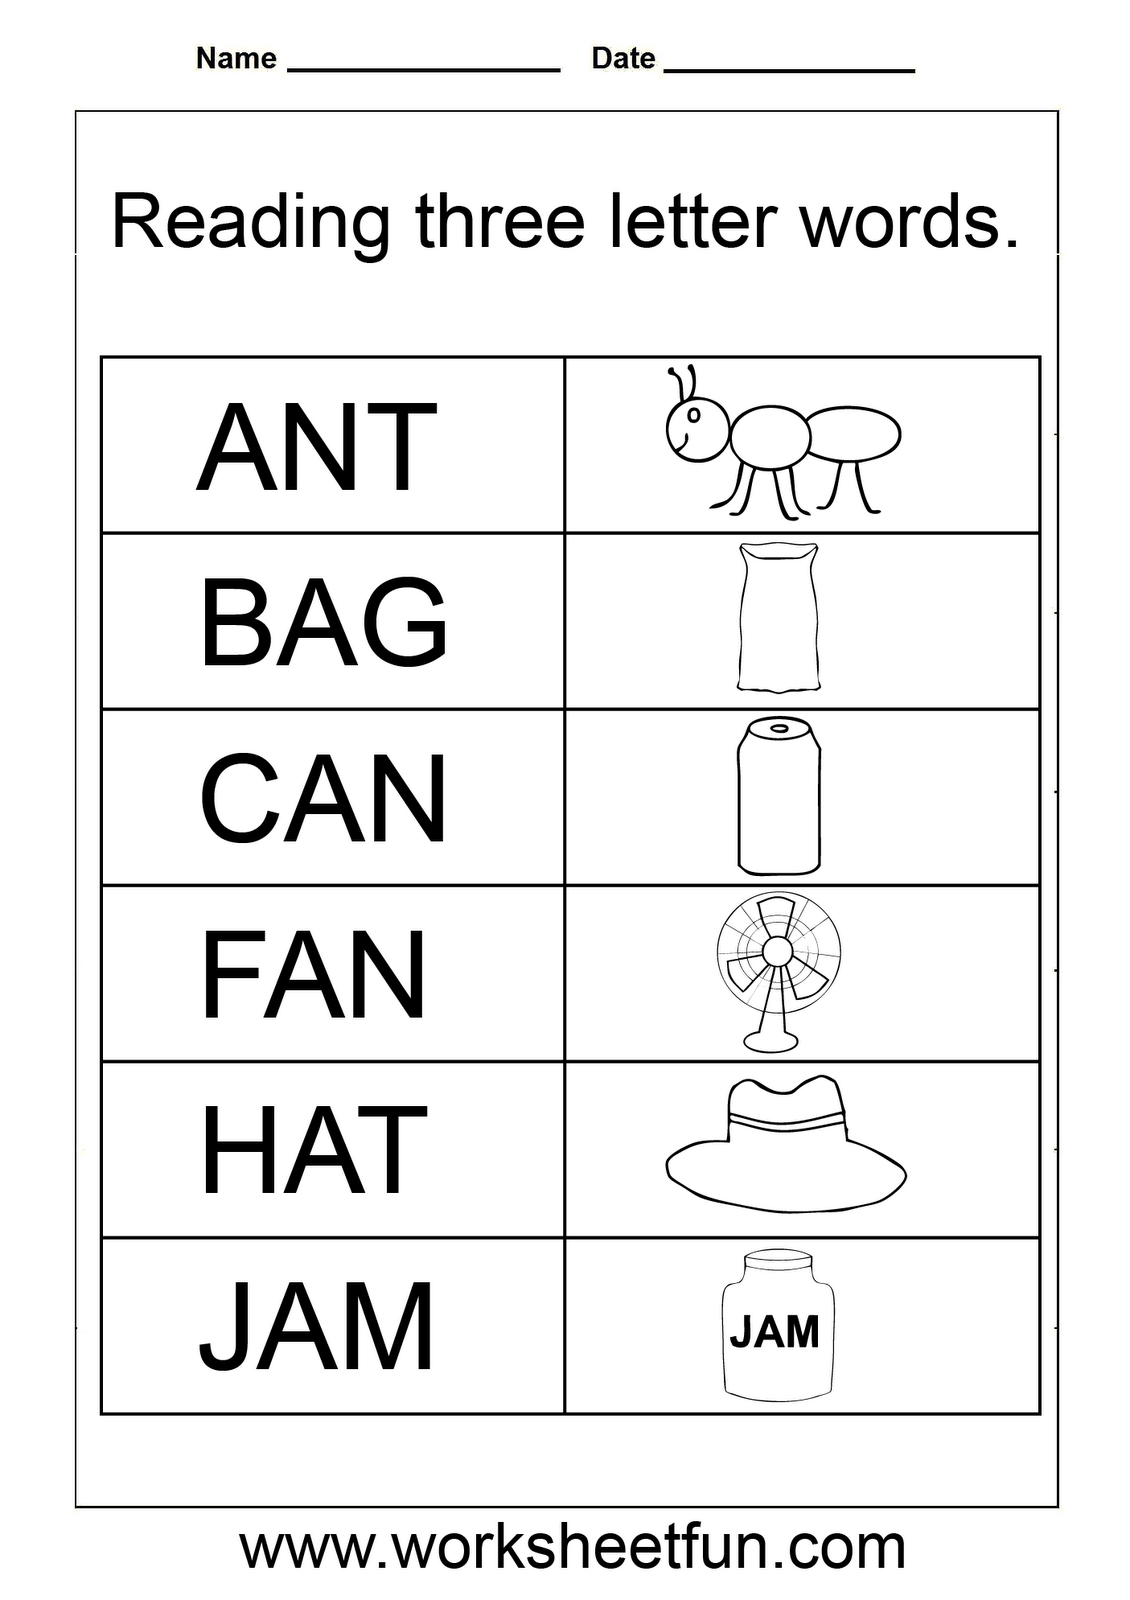 3 Letter Words Worksheets For Kindergarten | Spelling with Alphabet Worksheets For Ukg